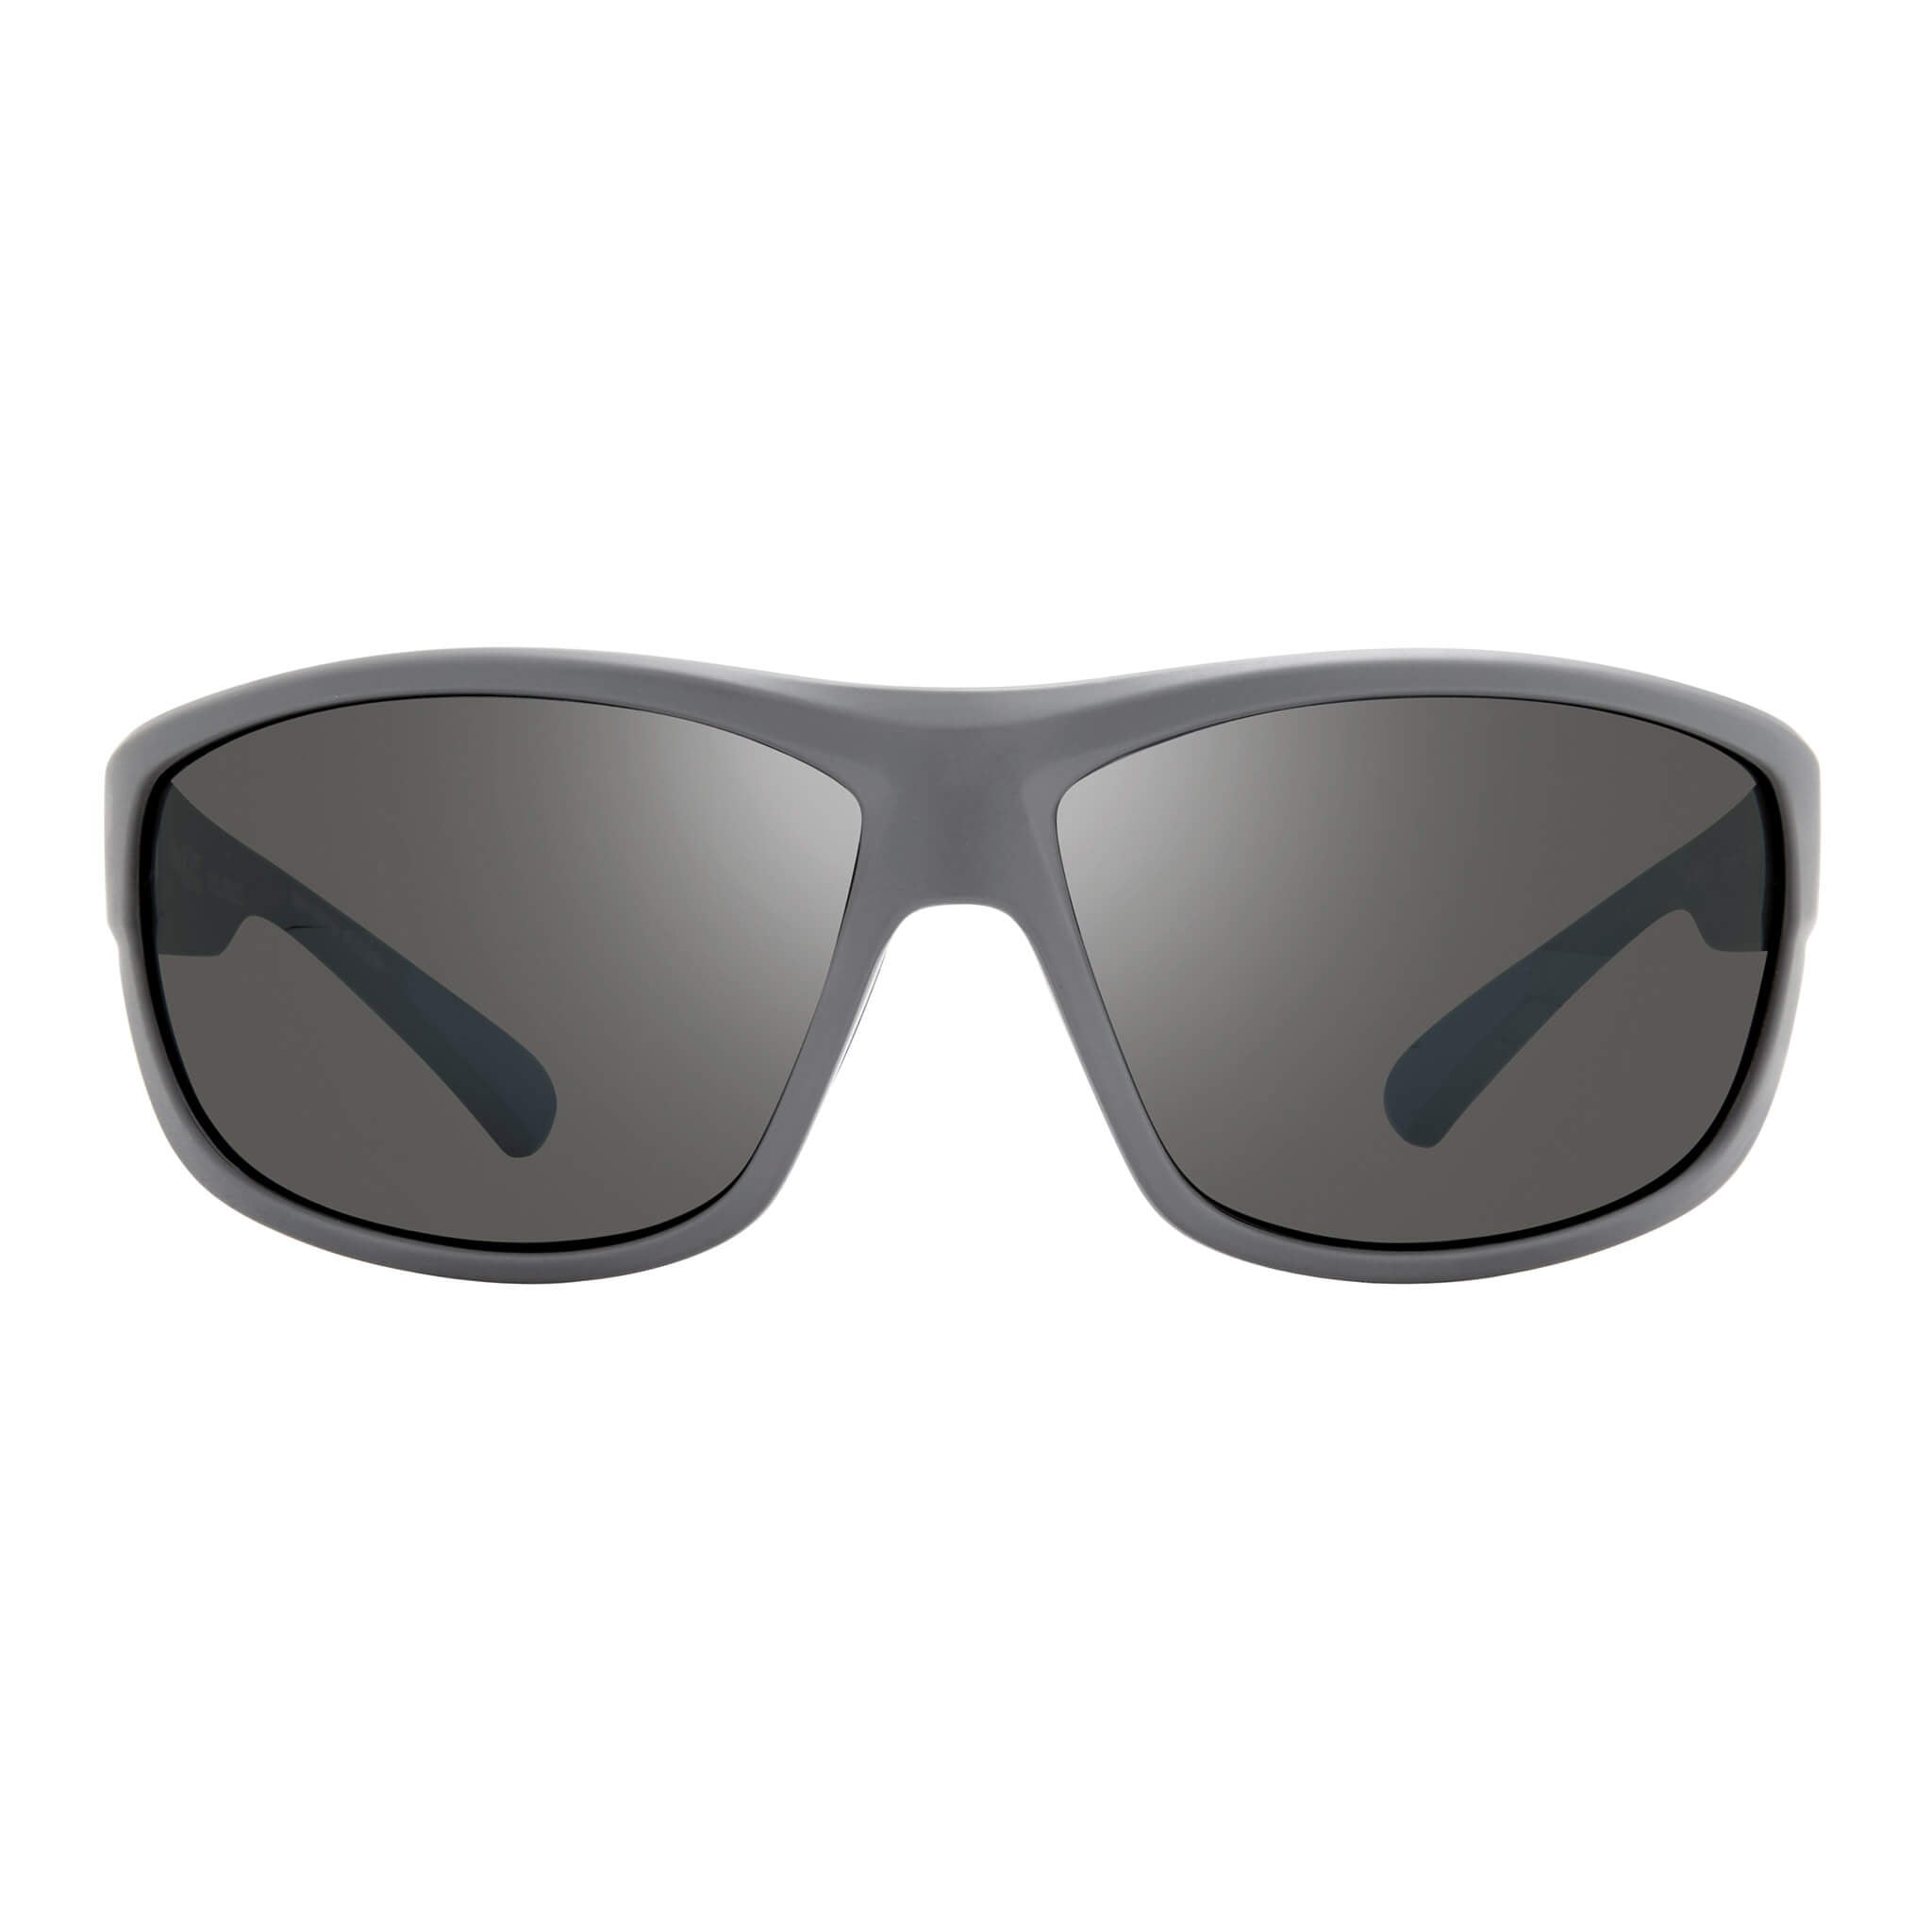 Matte light grey + graphite lens:Front view of Bear Grylls Revo Caper Sunglasses